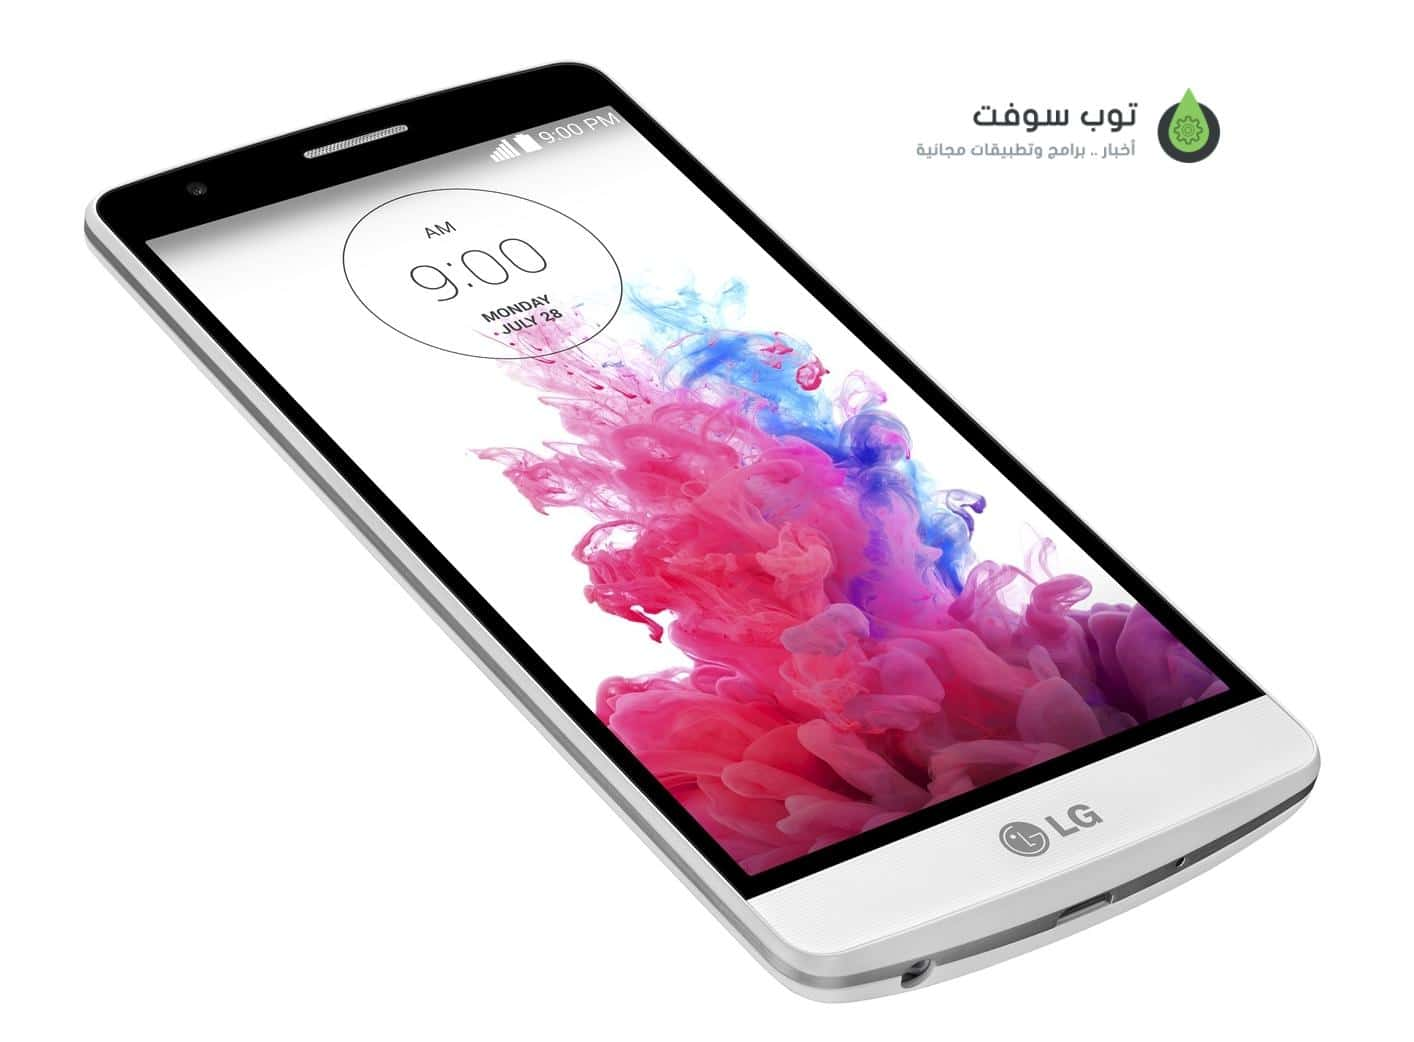 LG-G3-Beat-G3-s-official-images